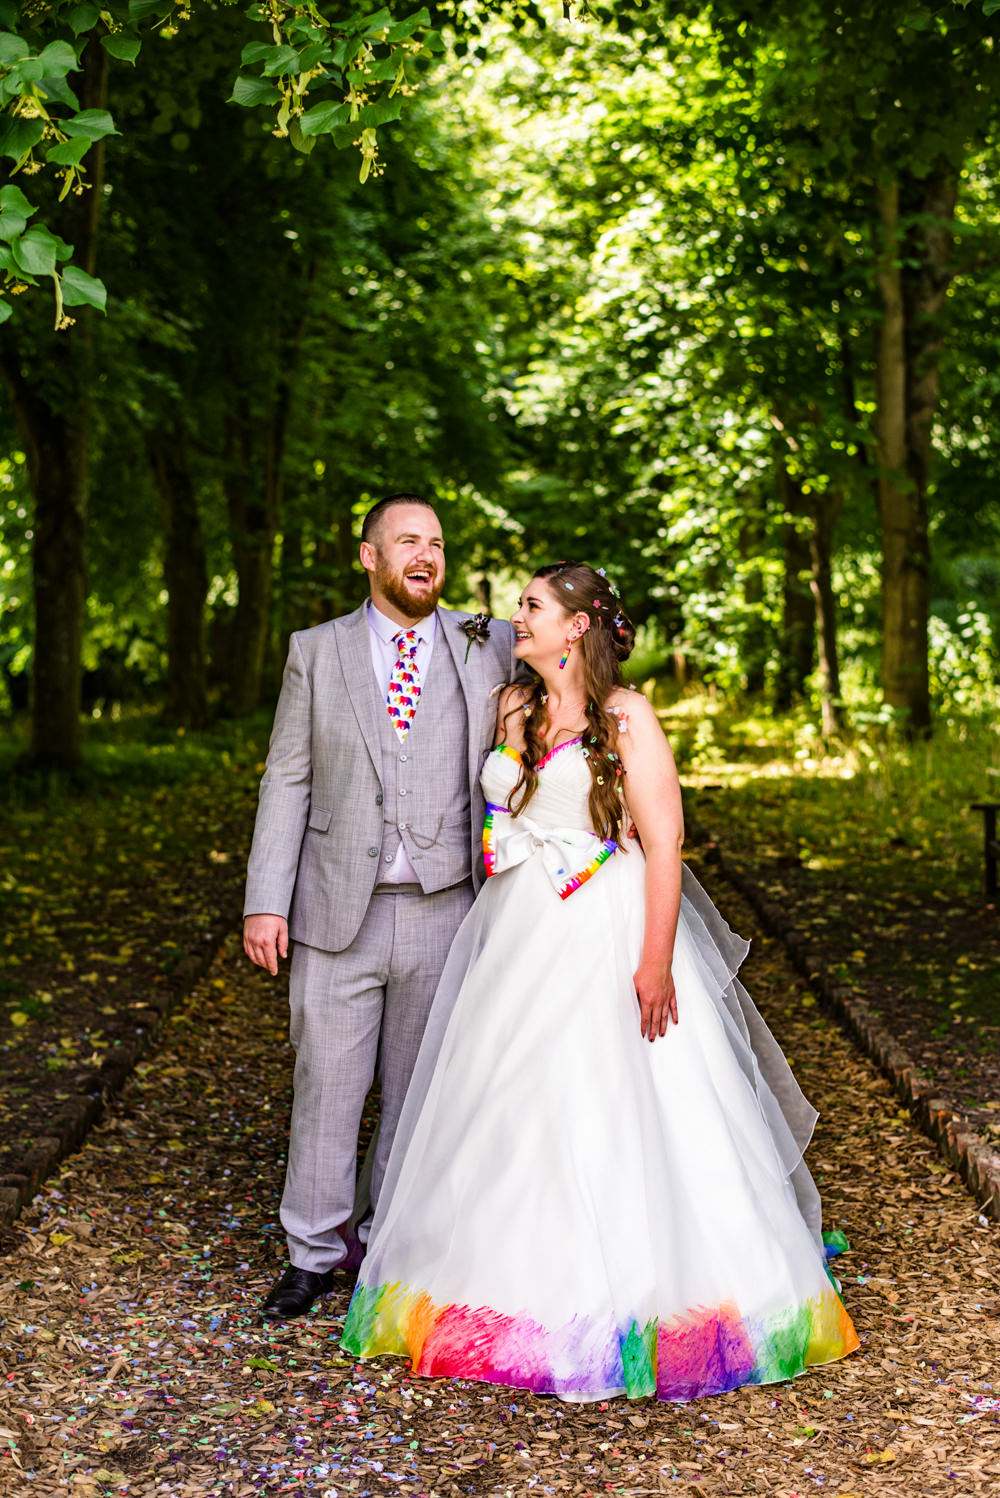 Bride Bridal A Line Tulle Gown Dress Bow Multicoloured Three Piece Suit Groom Safari Park Wedding Jonny Barratt Photography